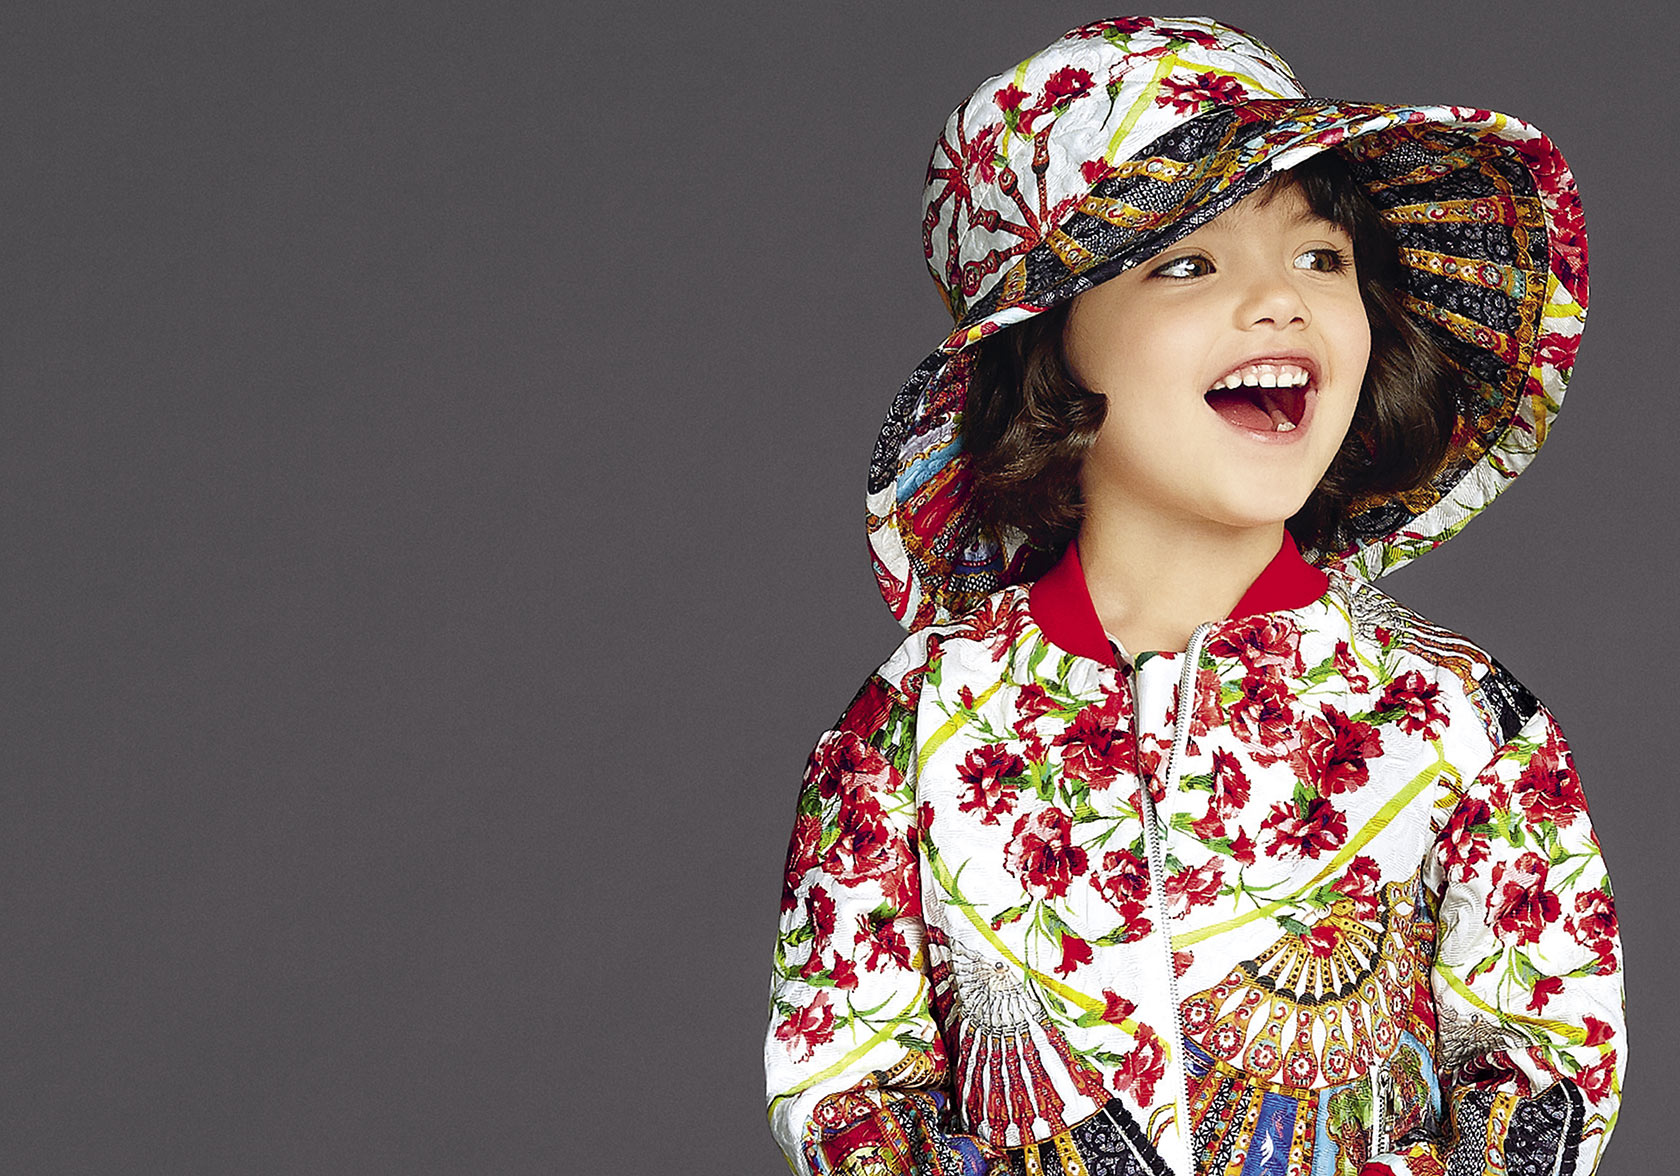 dolce-and-gabbana-summer-2015-child-collection-13-zoom.jpg